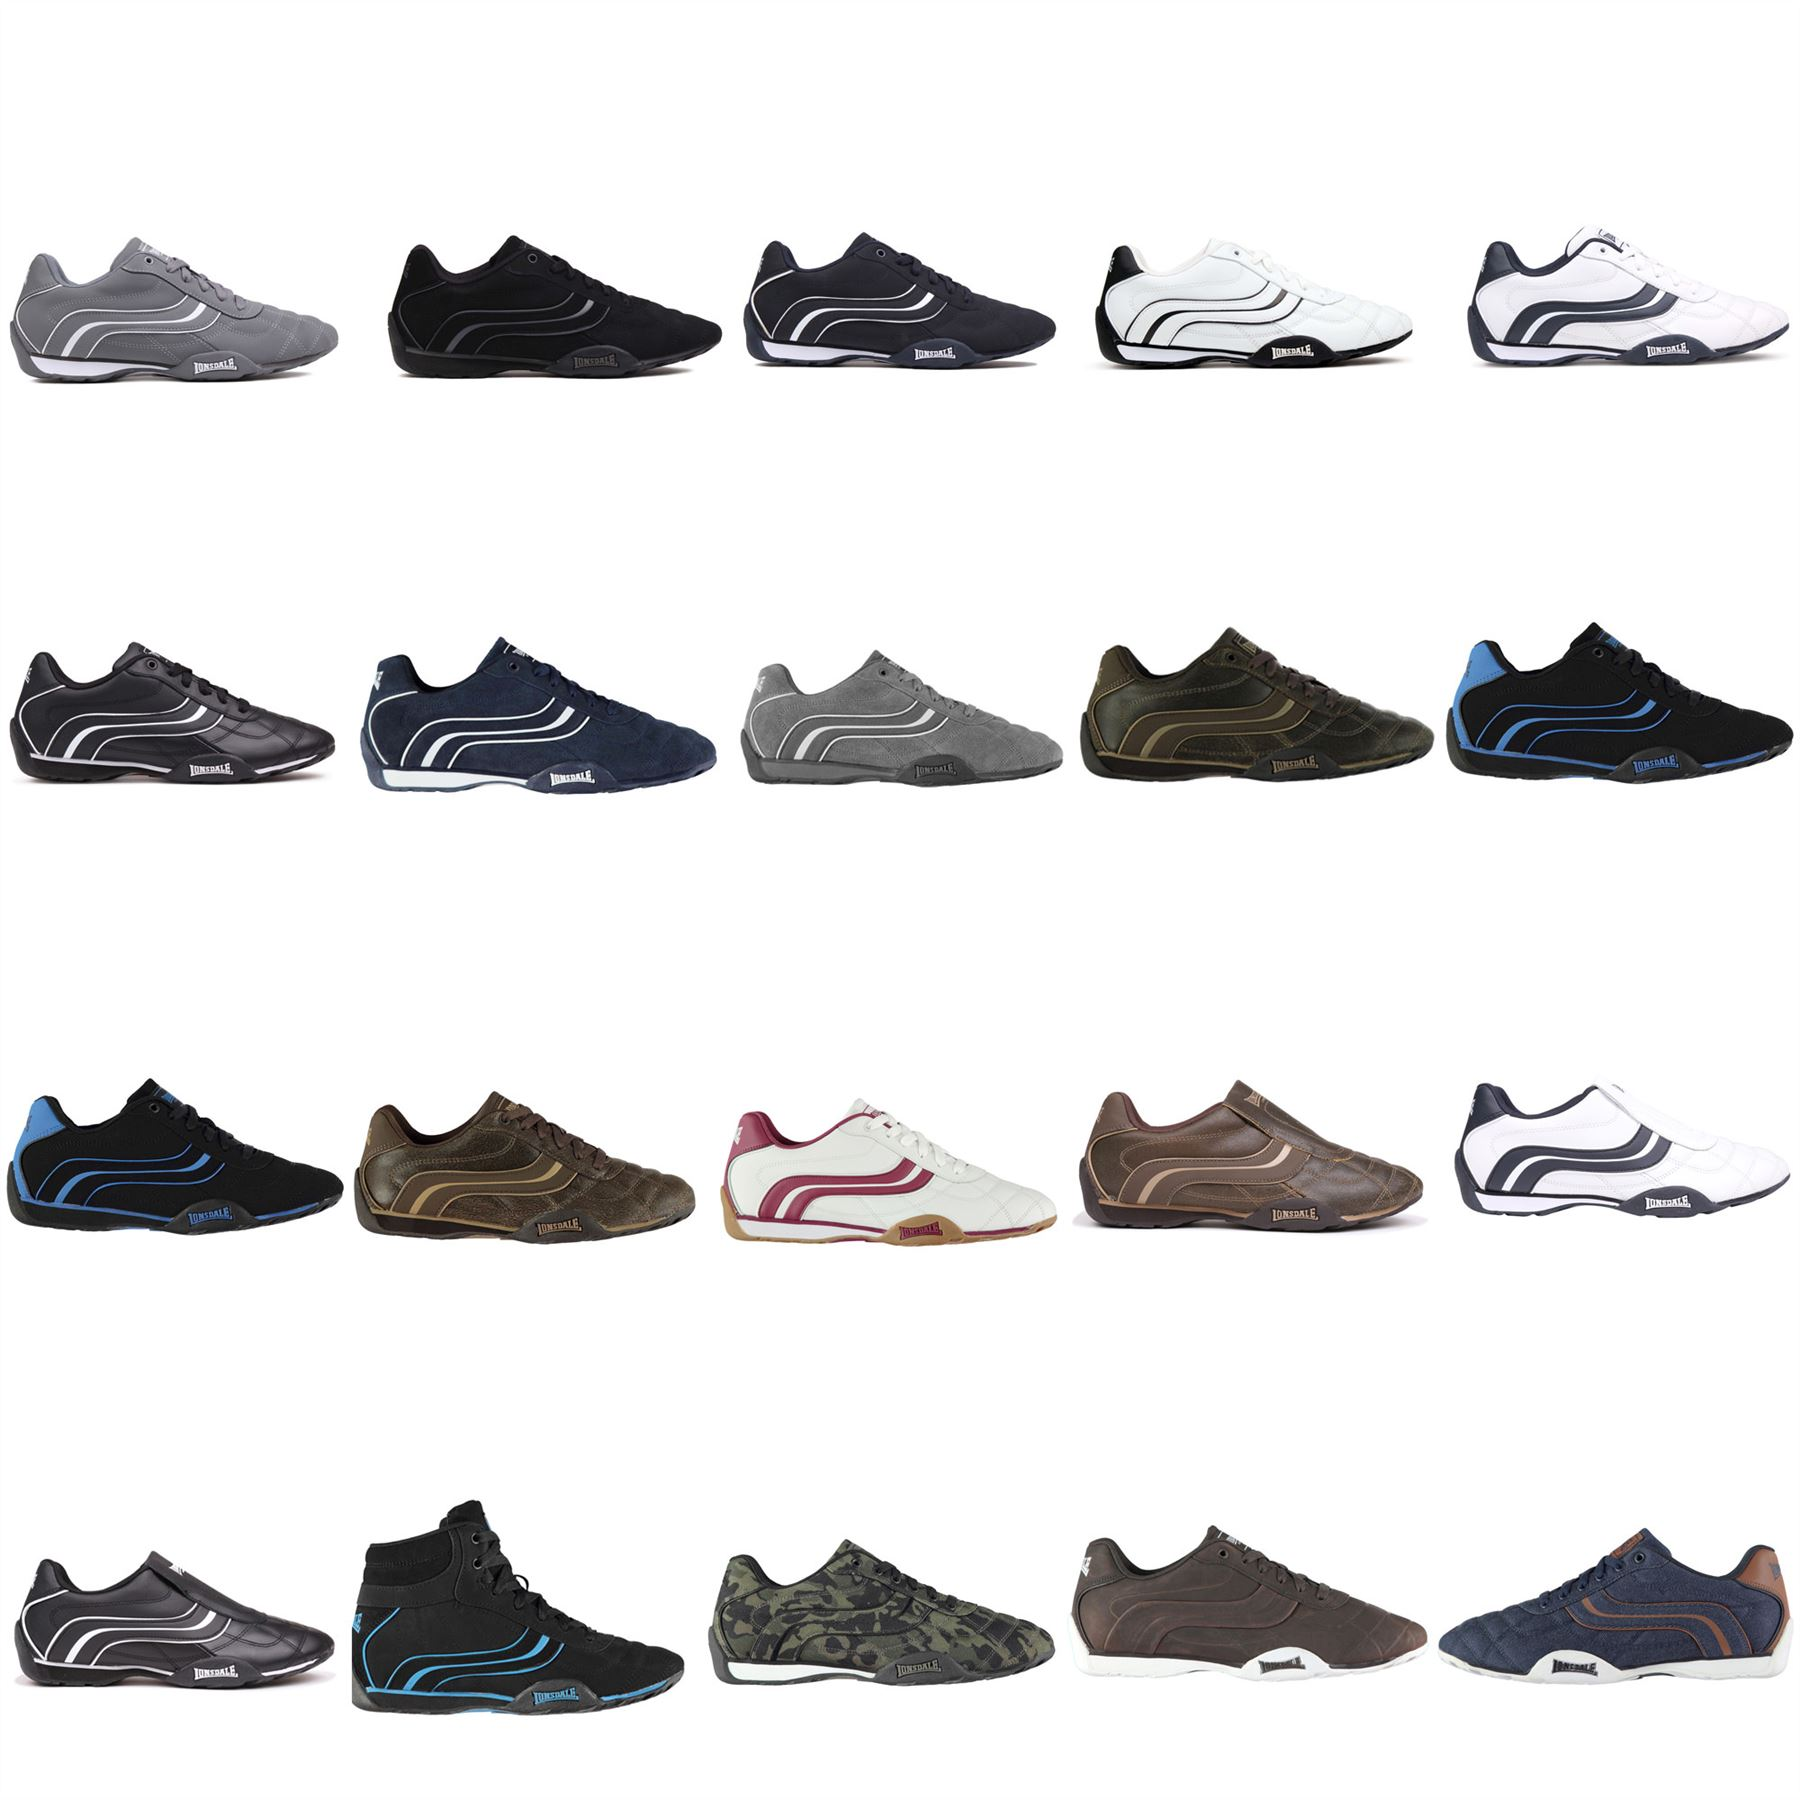 Details about Lonsdale Camden Trainers Mens Shoes Sneakers Footwear